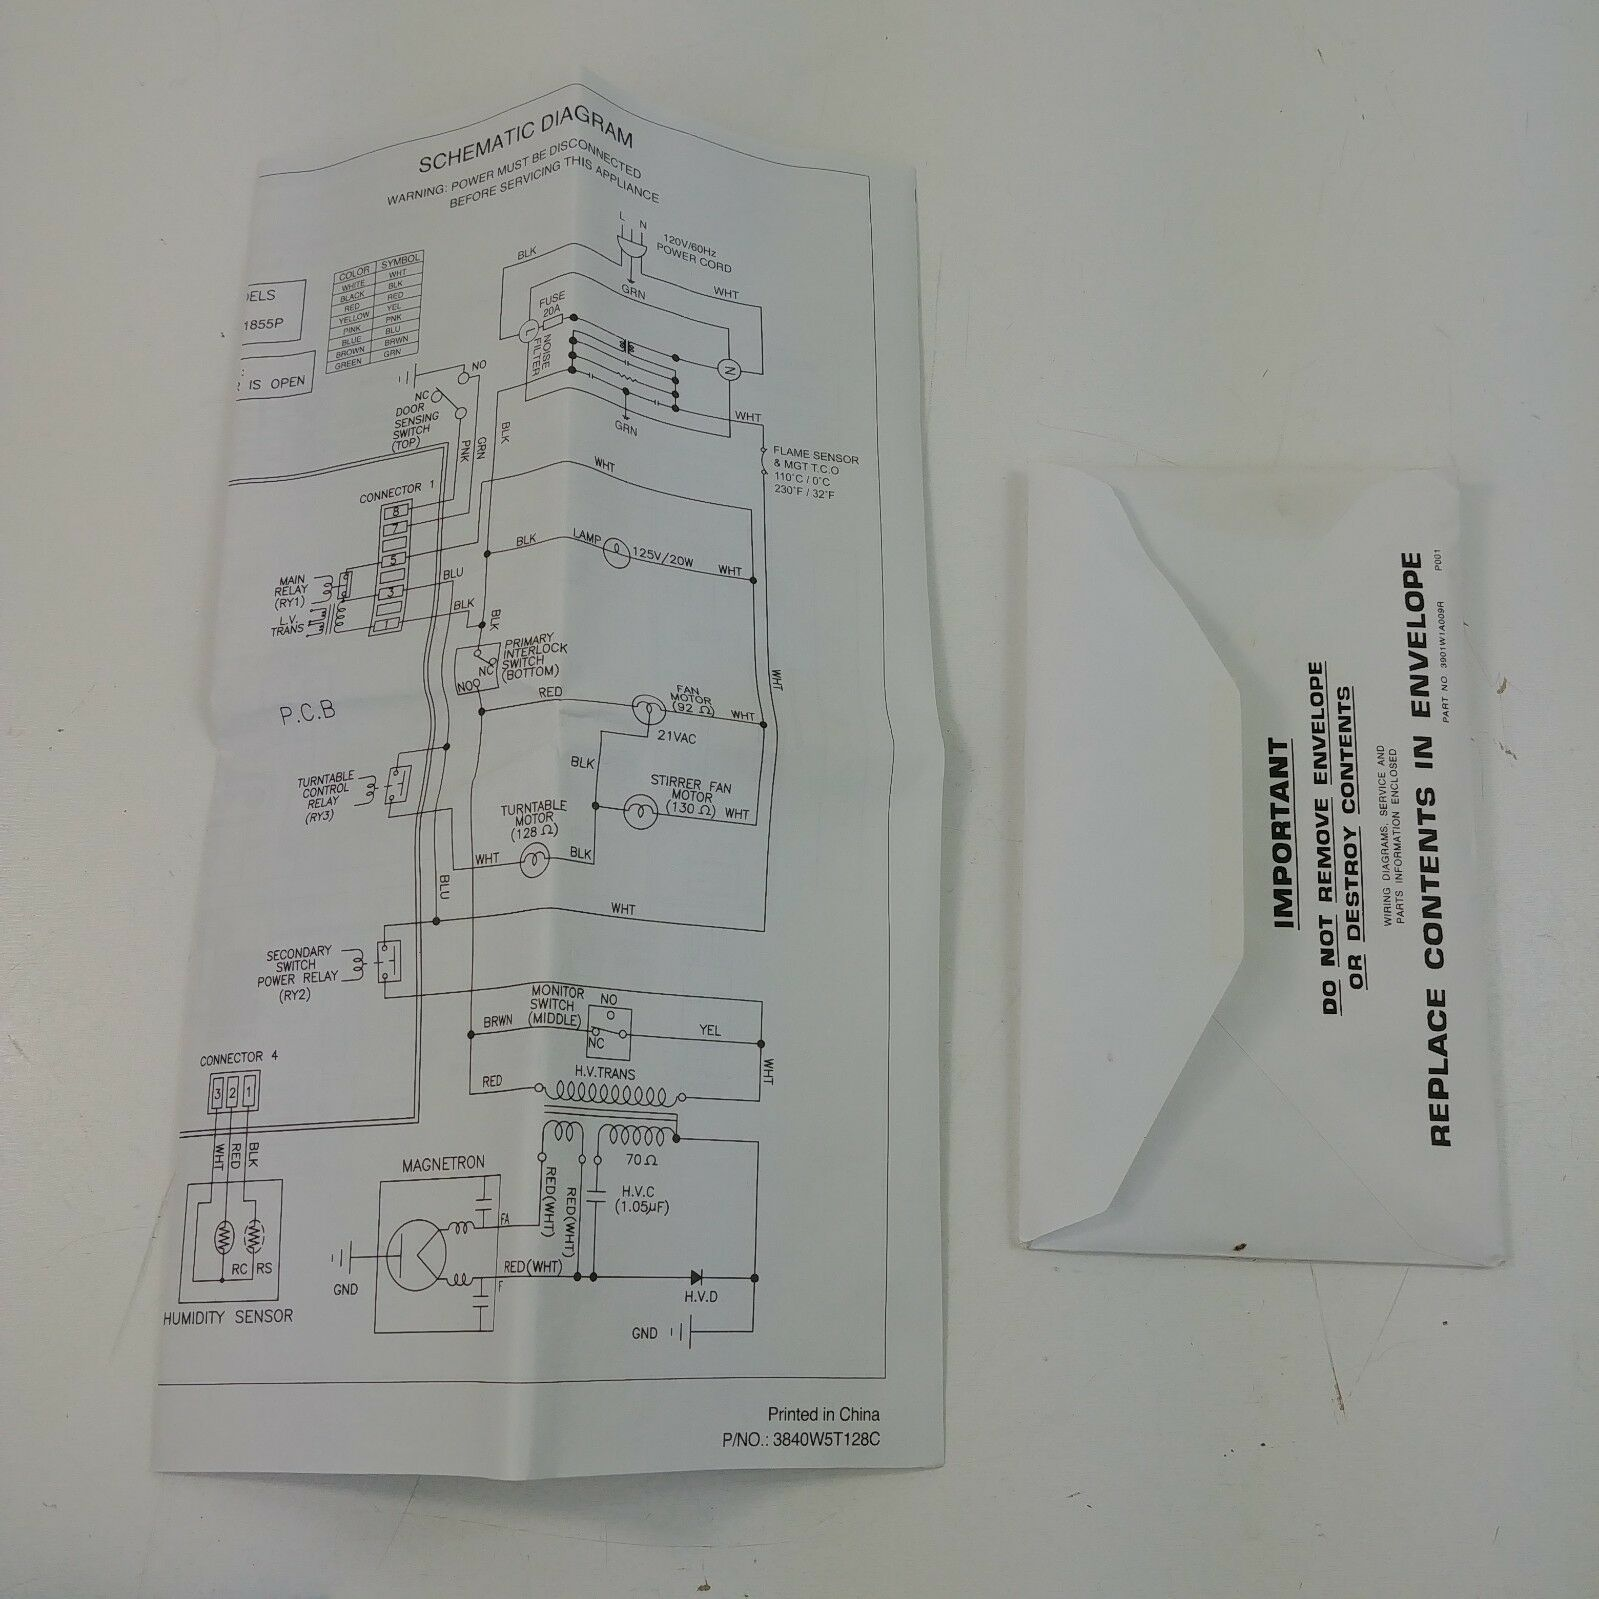 hight resolution of ge jes1855pbh microwave replacement tech schematicge jes1855pbh microwave replacement tech schematic diagram 3840w5t128c